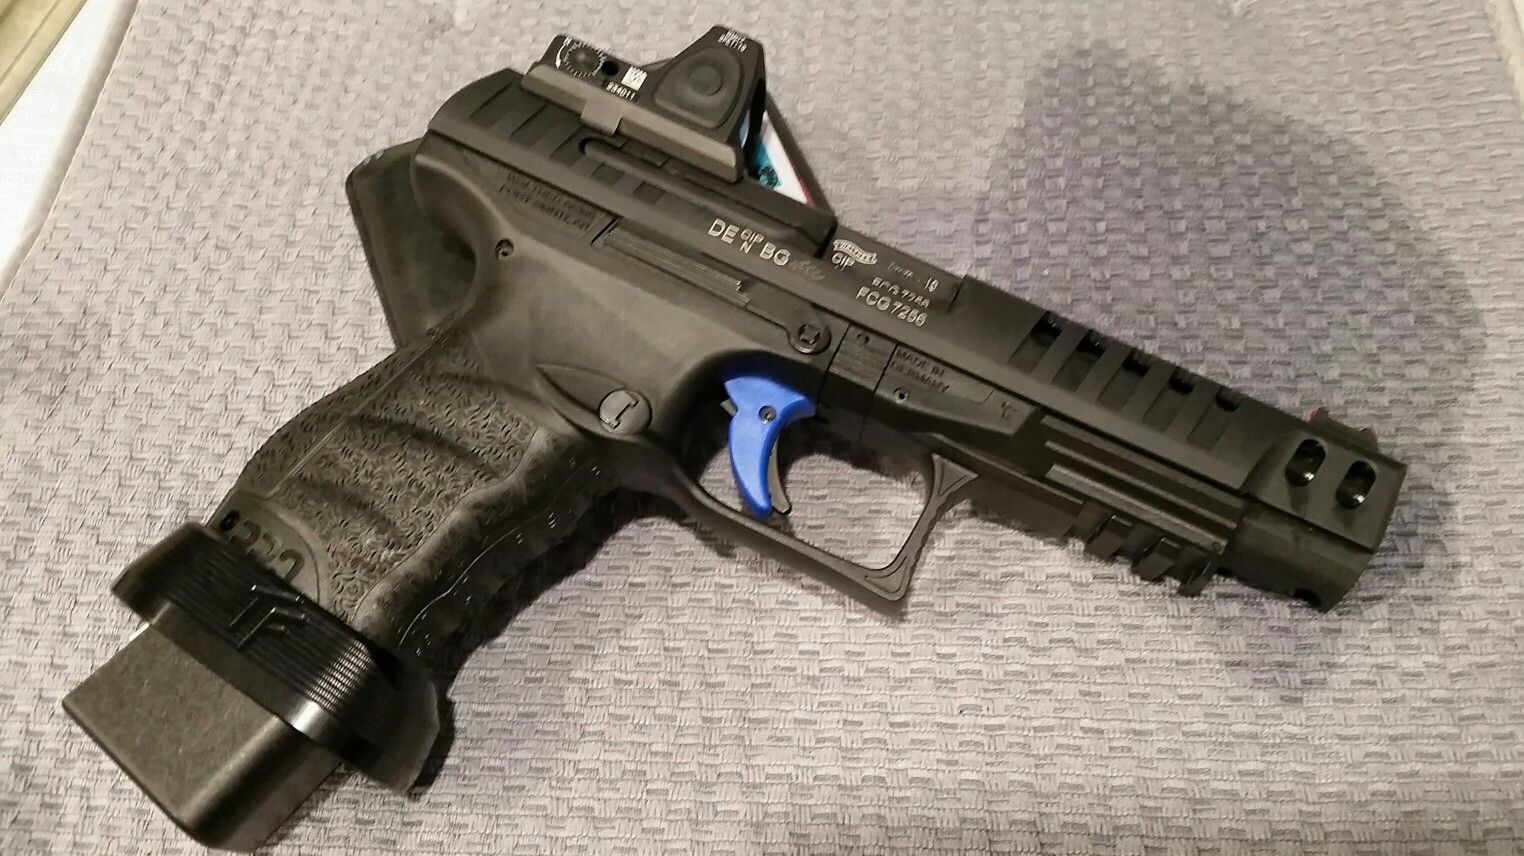 My Walther Q5 Match with Tailor Freelance magwell, mag